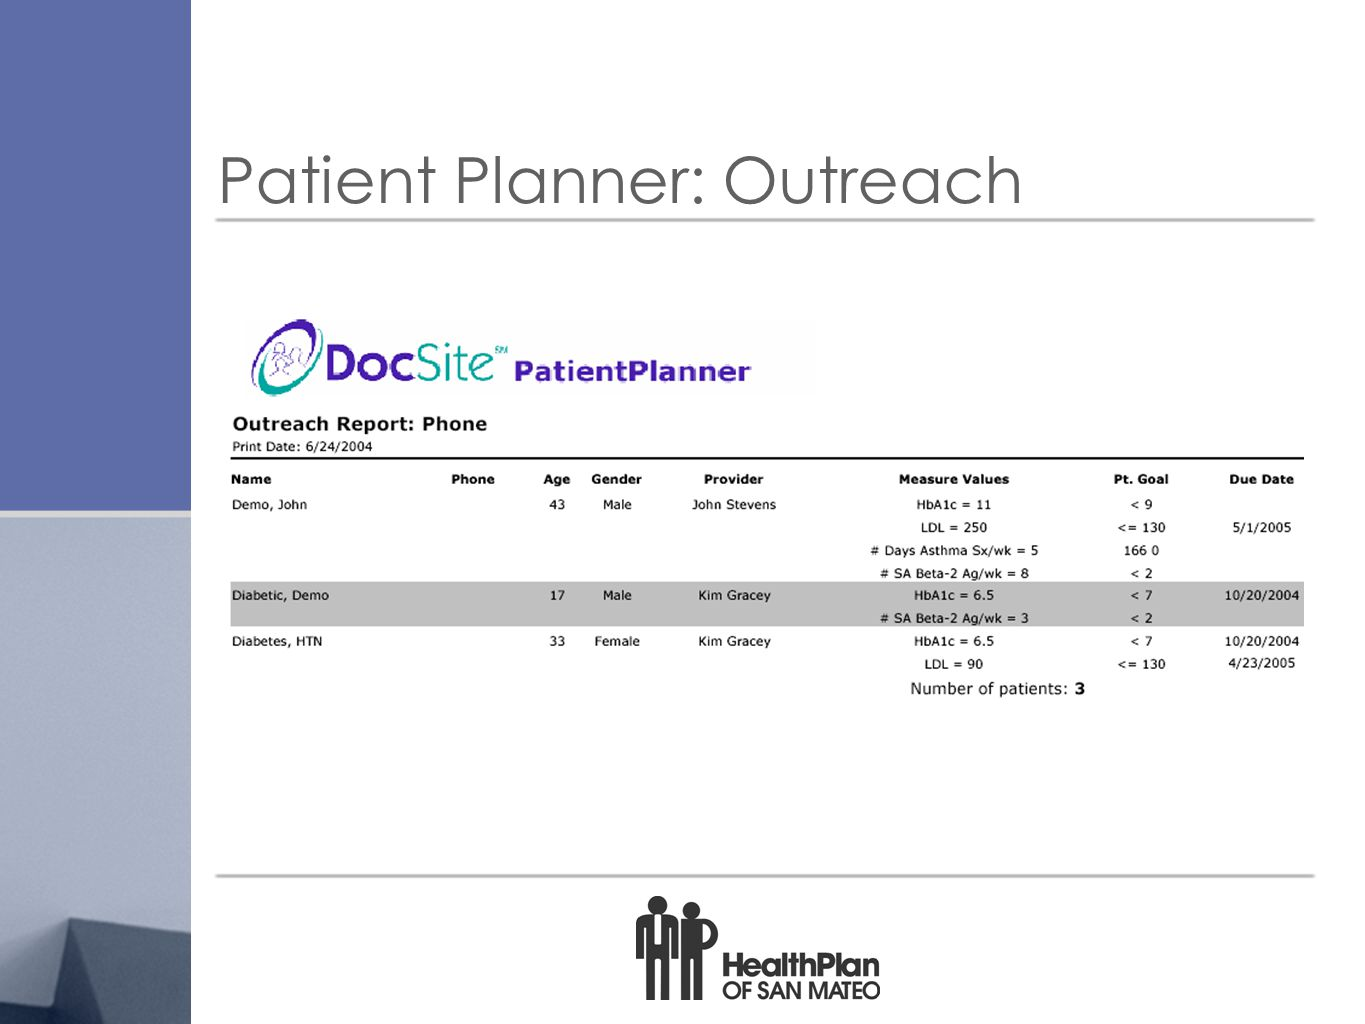 Patient Planner: Outreach